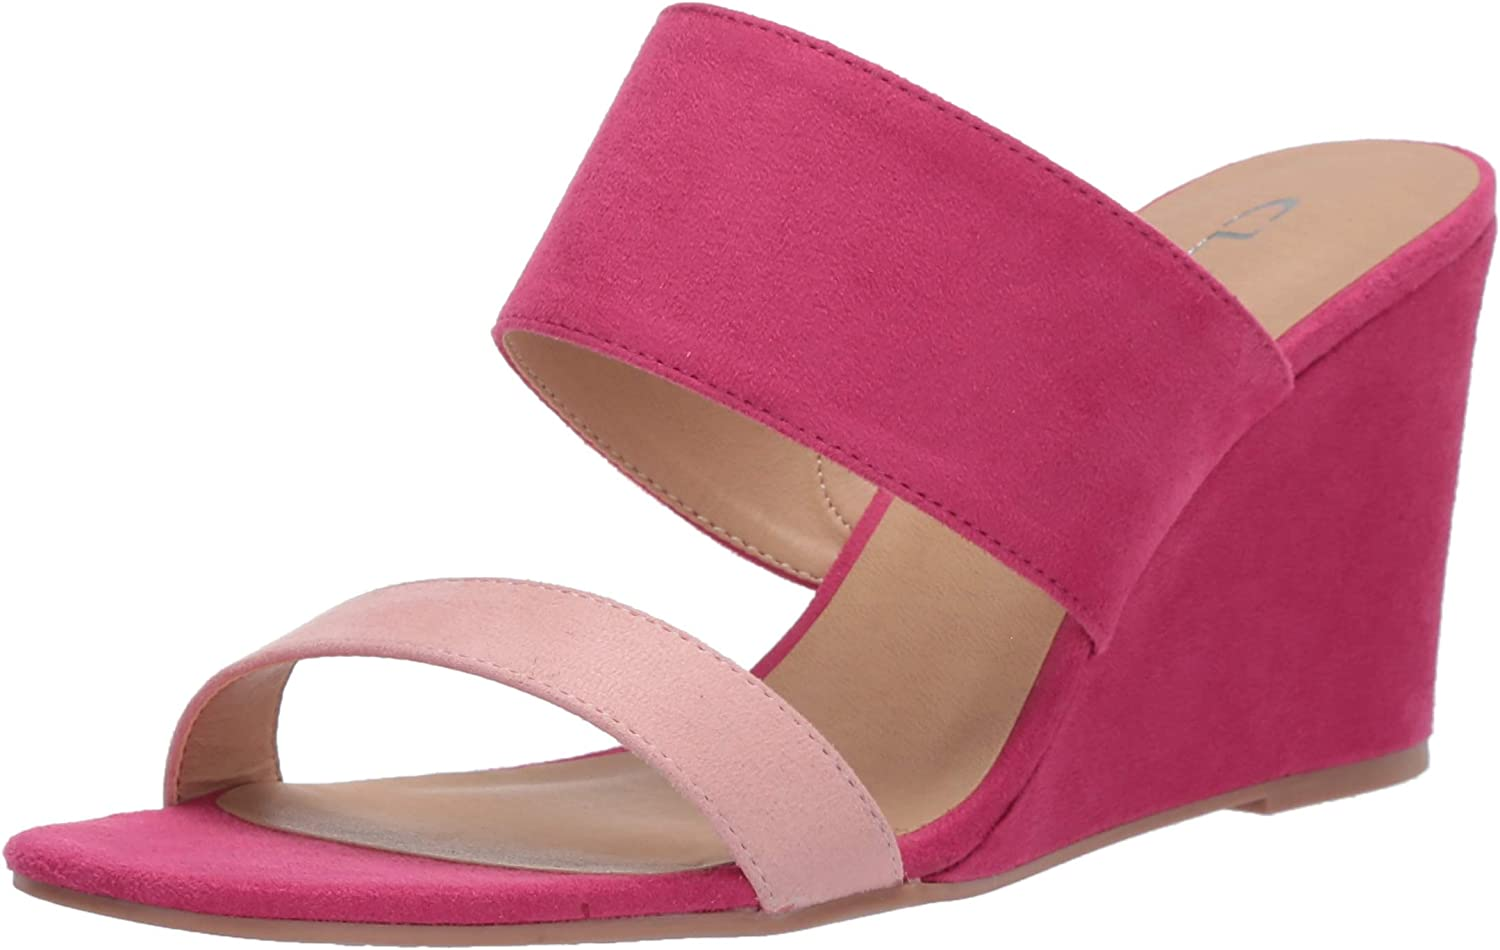 CL by Chinese Laundry Women's Wedge Sandal